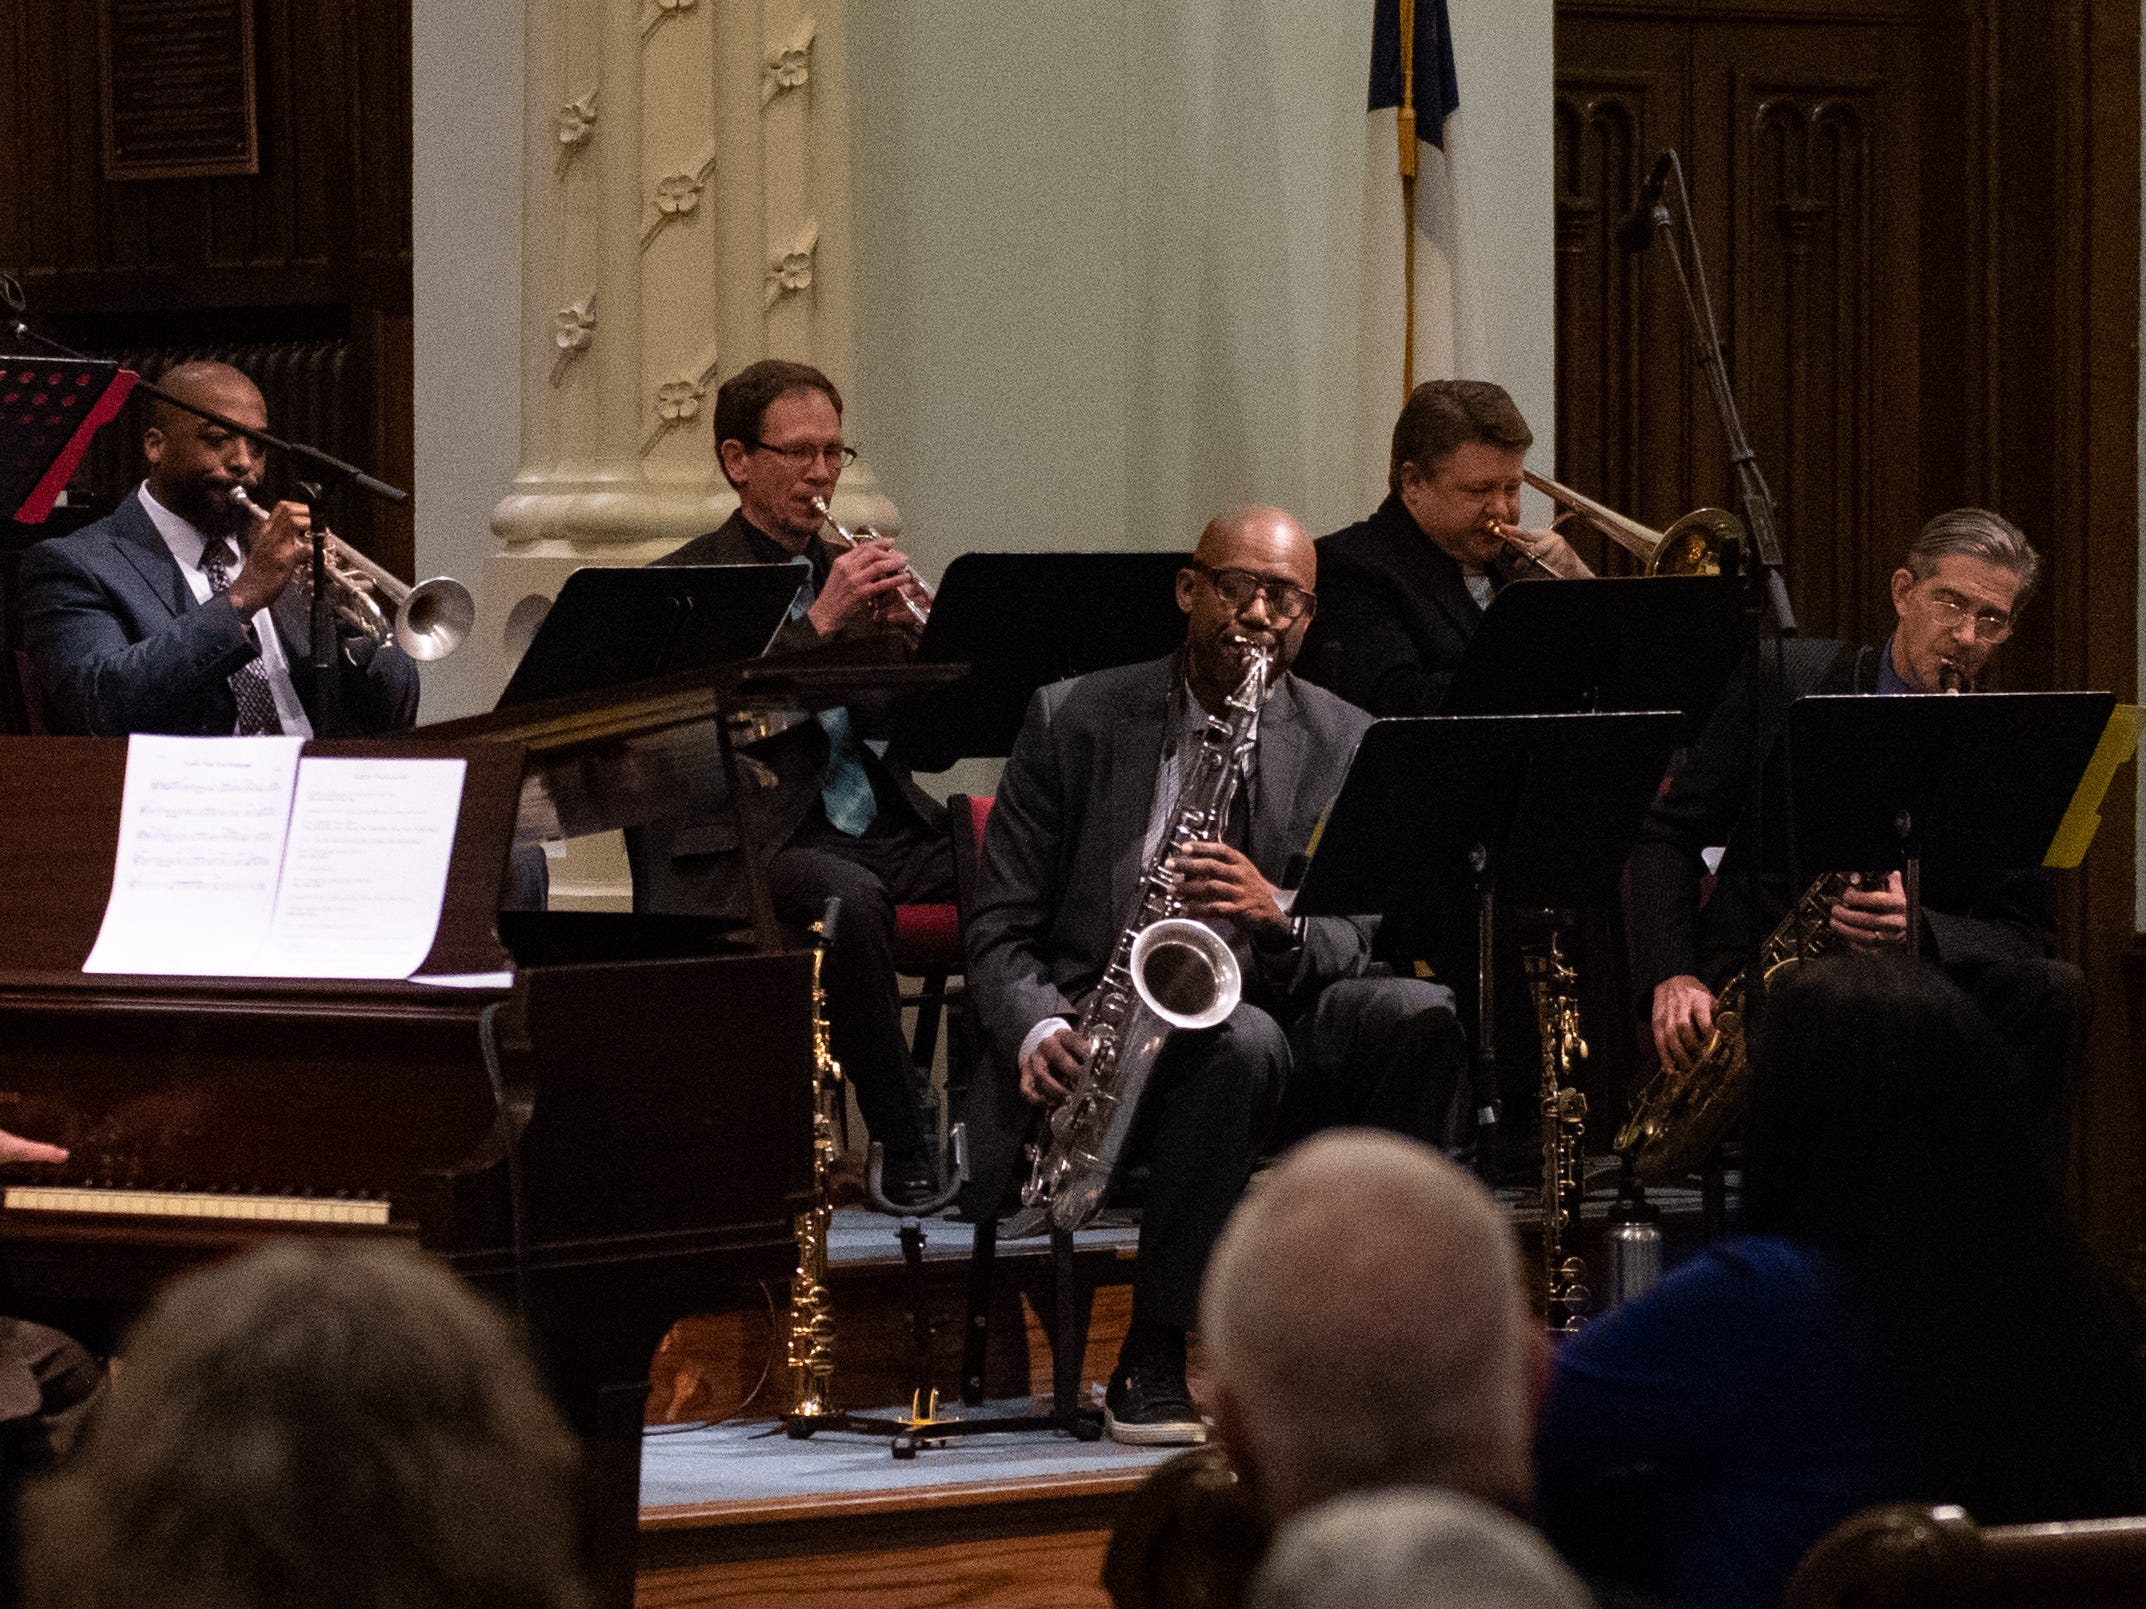 The band plays one song after another, briefly pausing in between to take in the applause of the audience during the 21st annual Jazz Vespers concert at First Presbyterian Church in York, January 12, 2019.